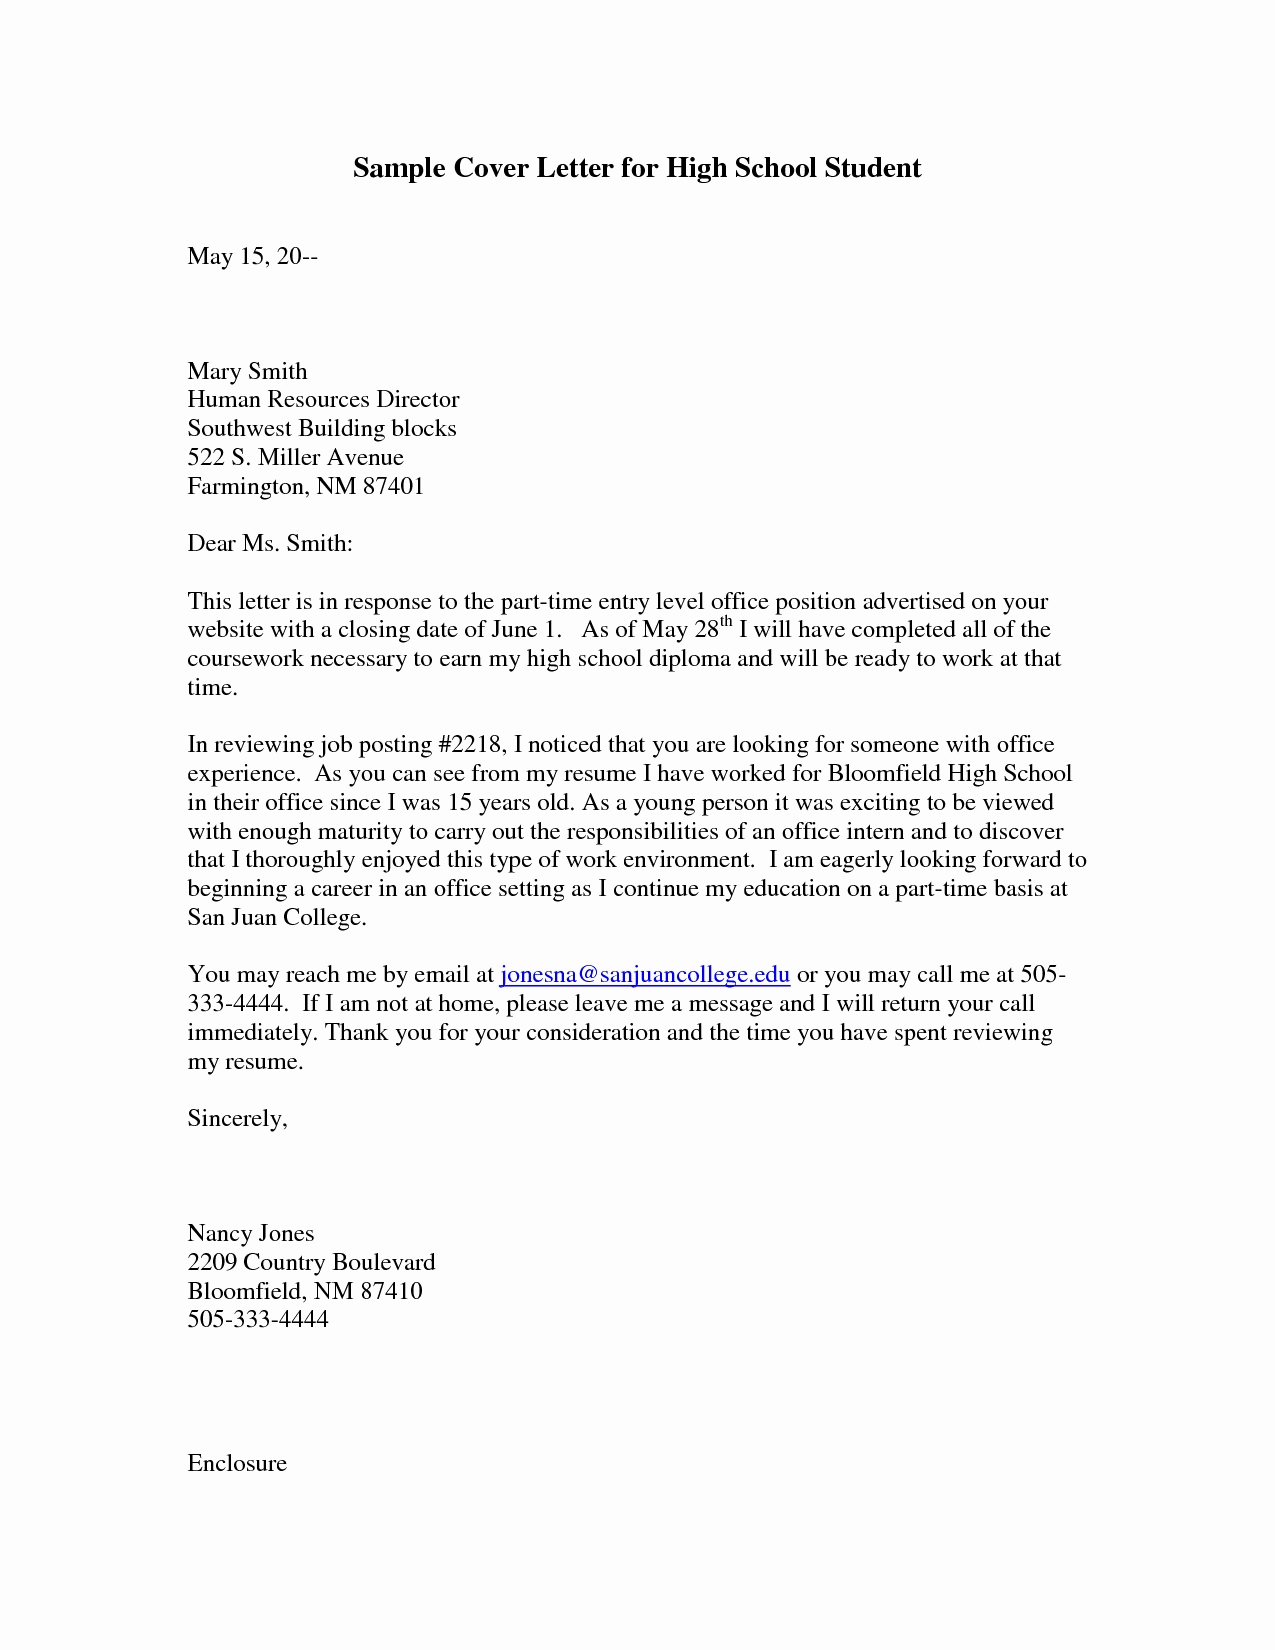 Scholarship Cover Letter Sample Lovely Sample Cover Letter for High School Student with No Work